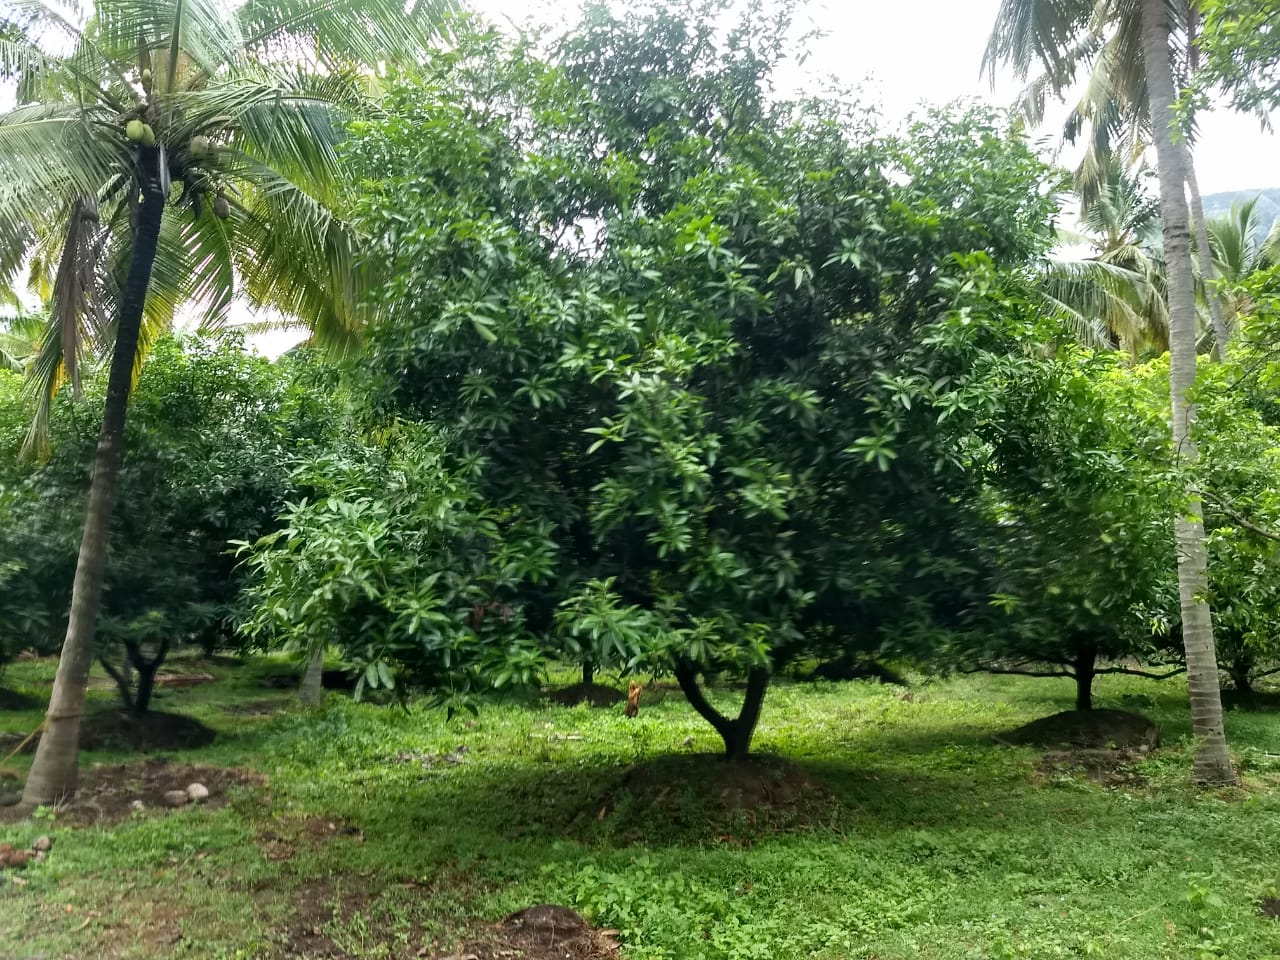 Cheap 13 Acre Mixed Farm Land With Farm House For Sale In